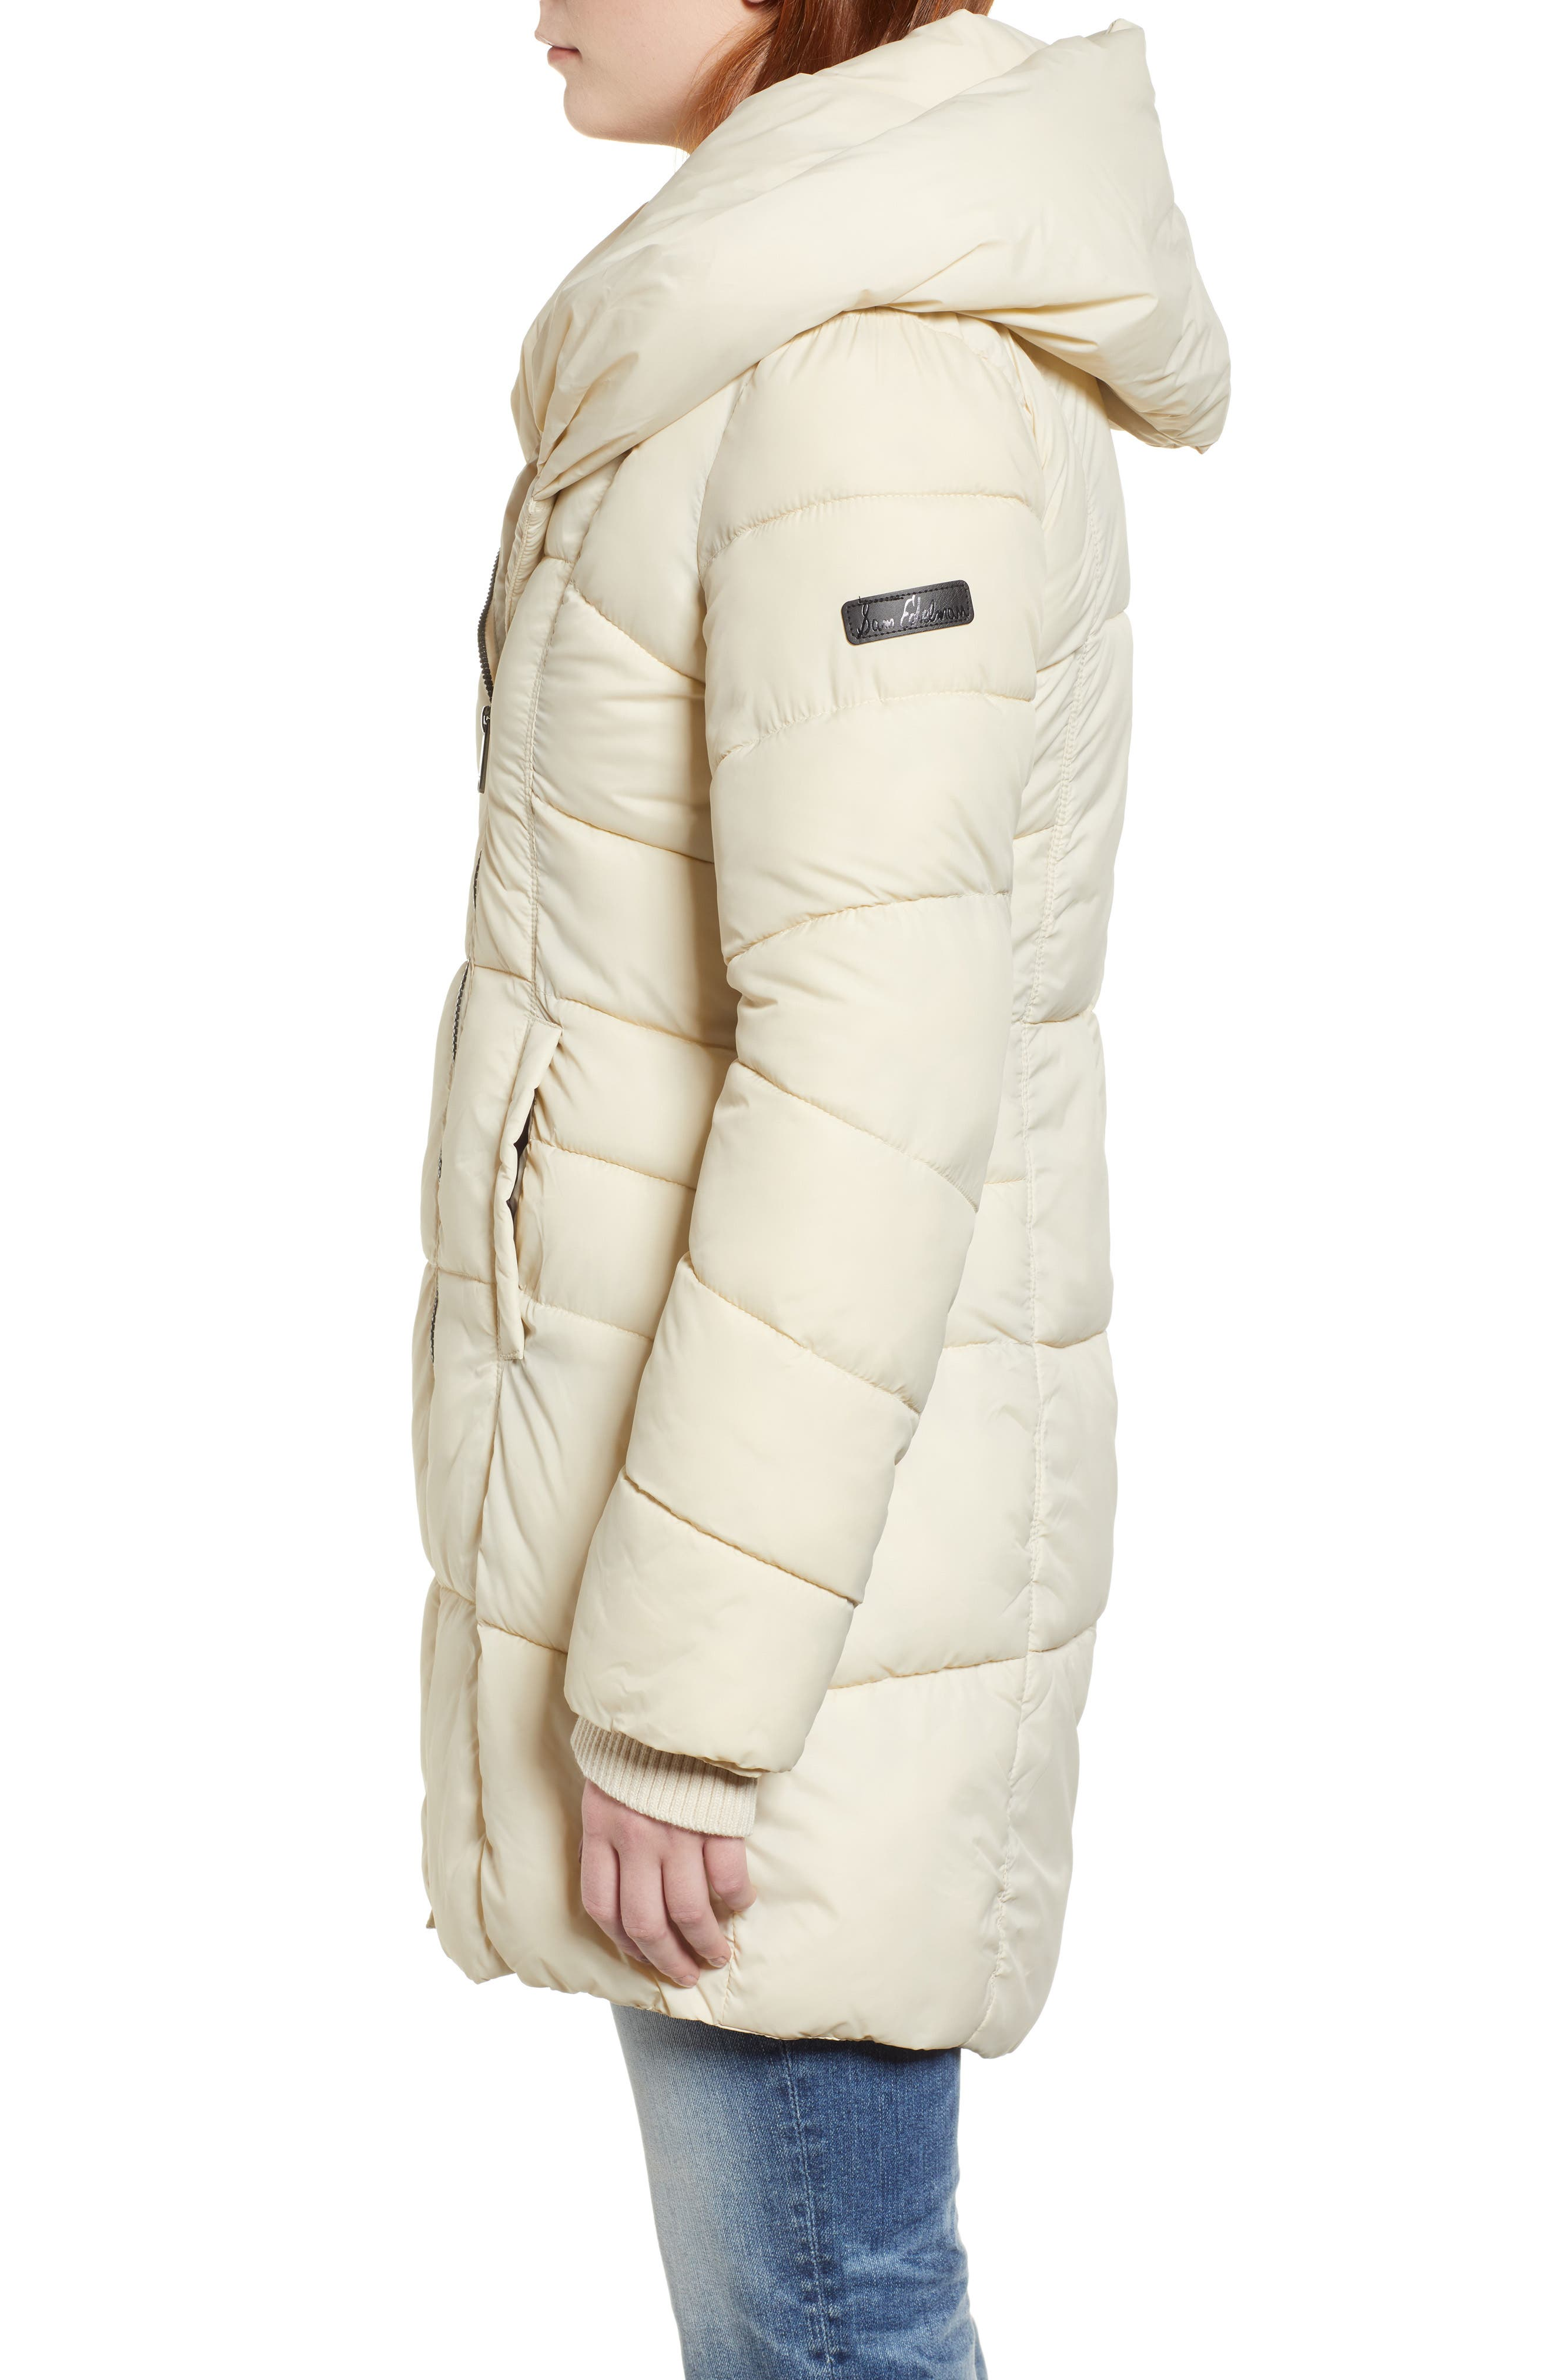 Pillow Collar Puffer Coat,                             Alternate thumbnail 3, color,                             IVORY